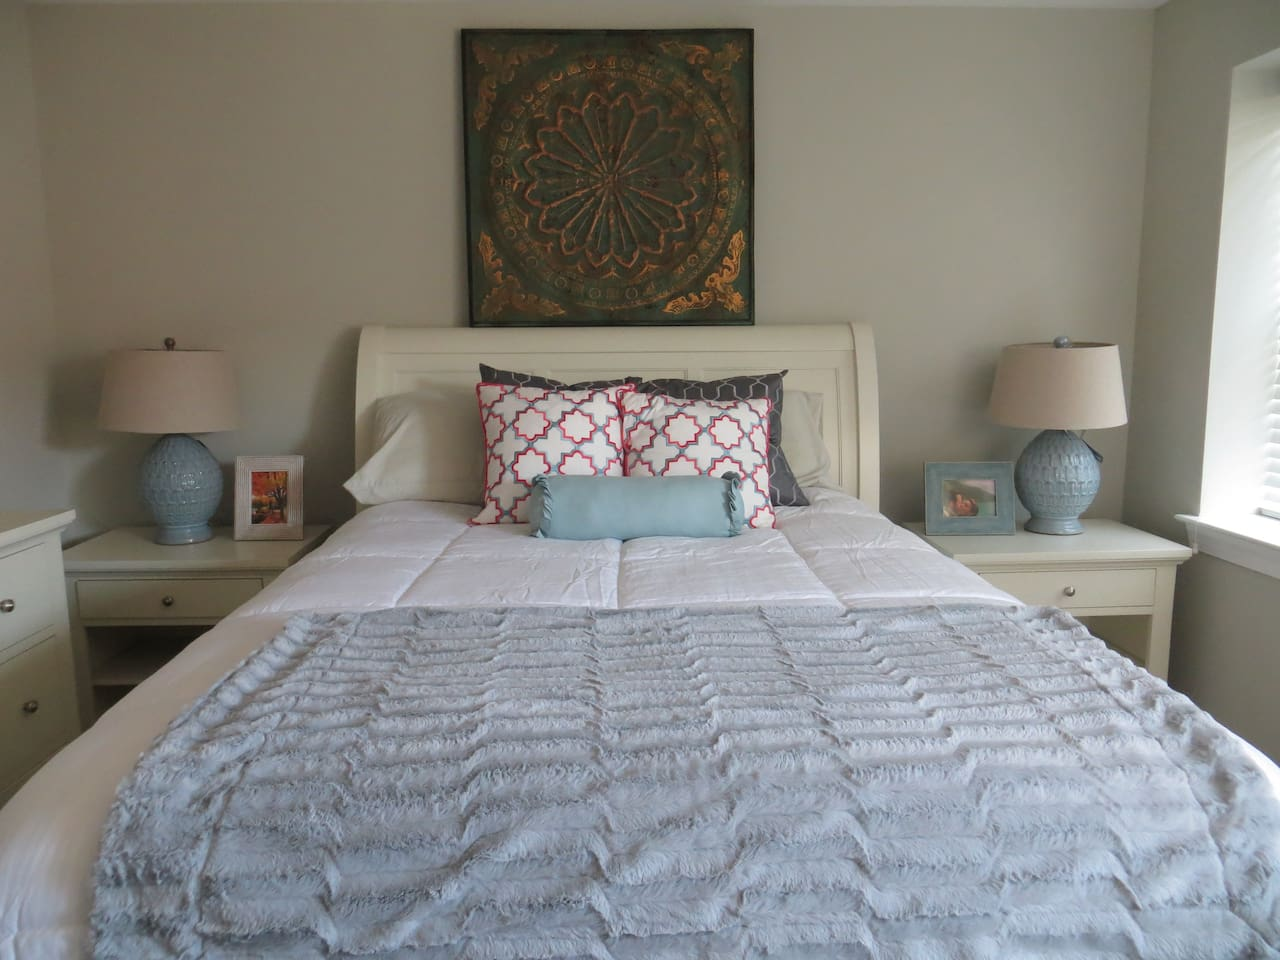 Our home was completely renovated. Master bedroom is the most comfortable place to relax after a day around Philly.